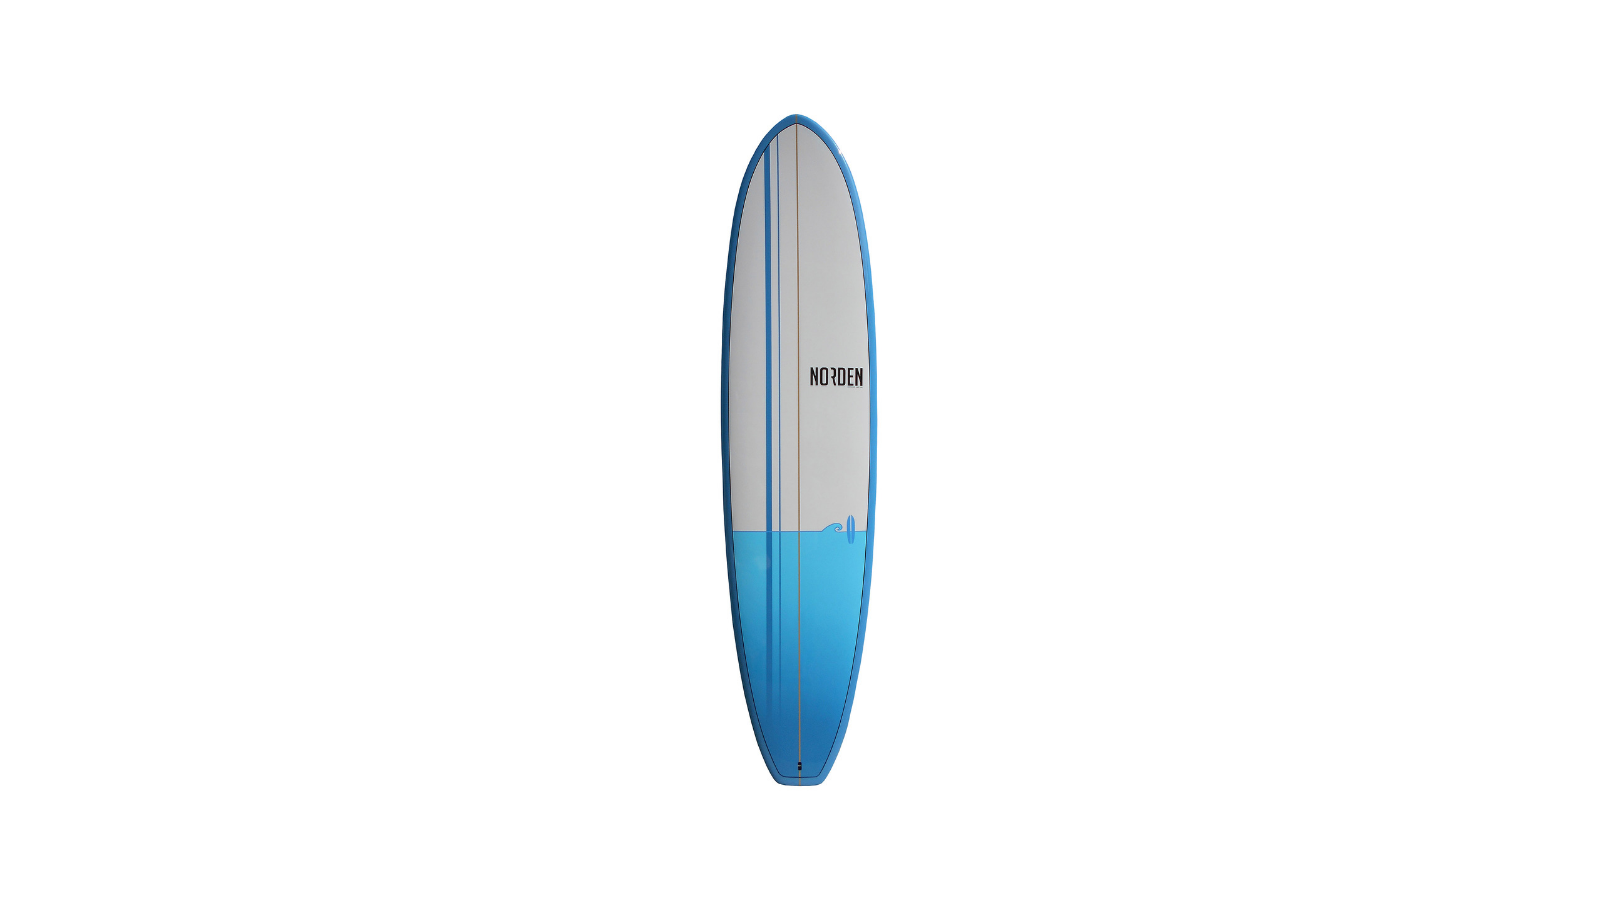 norden-surfboards-malibu-First-Ride-blue-top-epoxy-composite